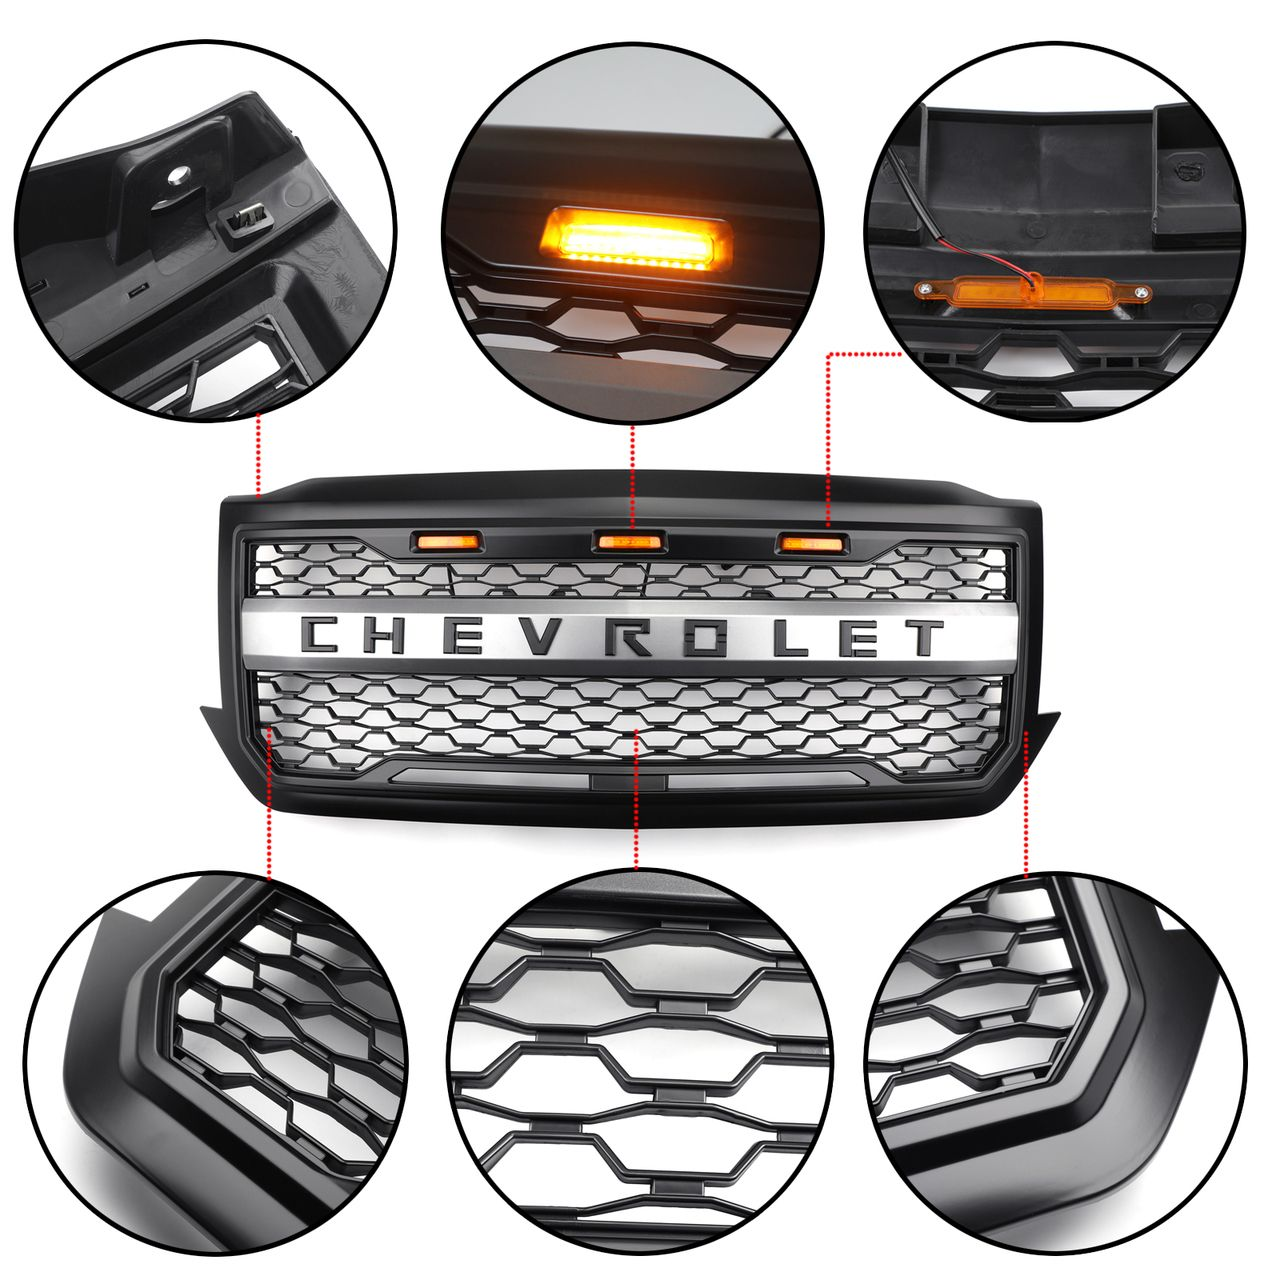 Led Front Grille For Chevrolet Silverado 1500 2016 2017 2018 Black Chevy Silverado Accessories Chevrolet Silverado Silverado Accessories